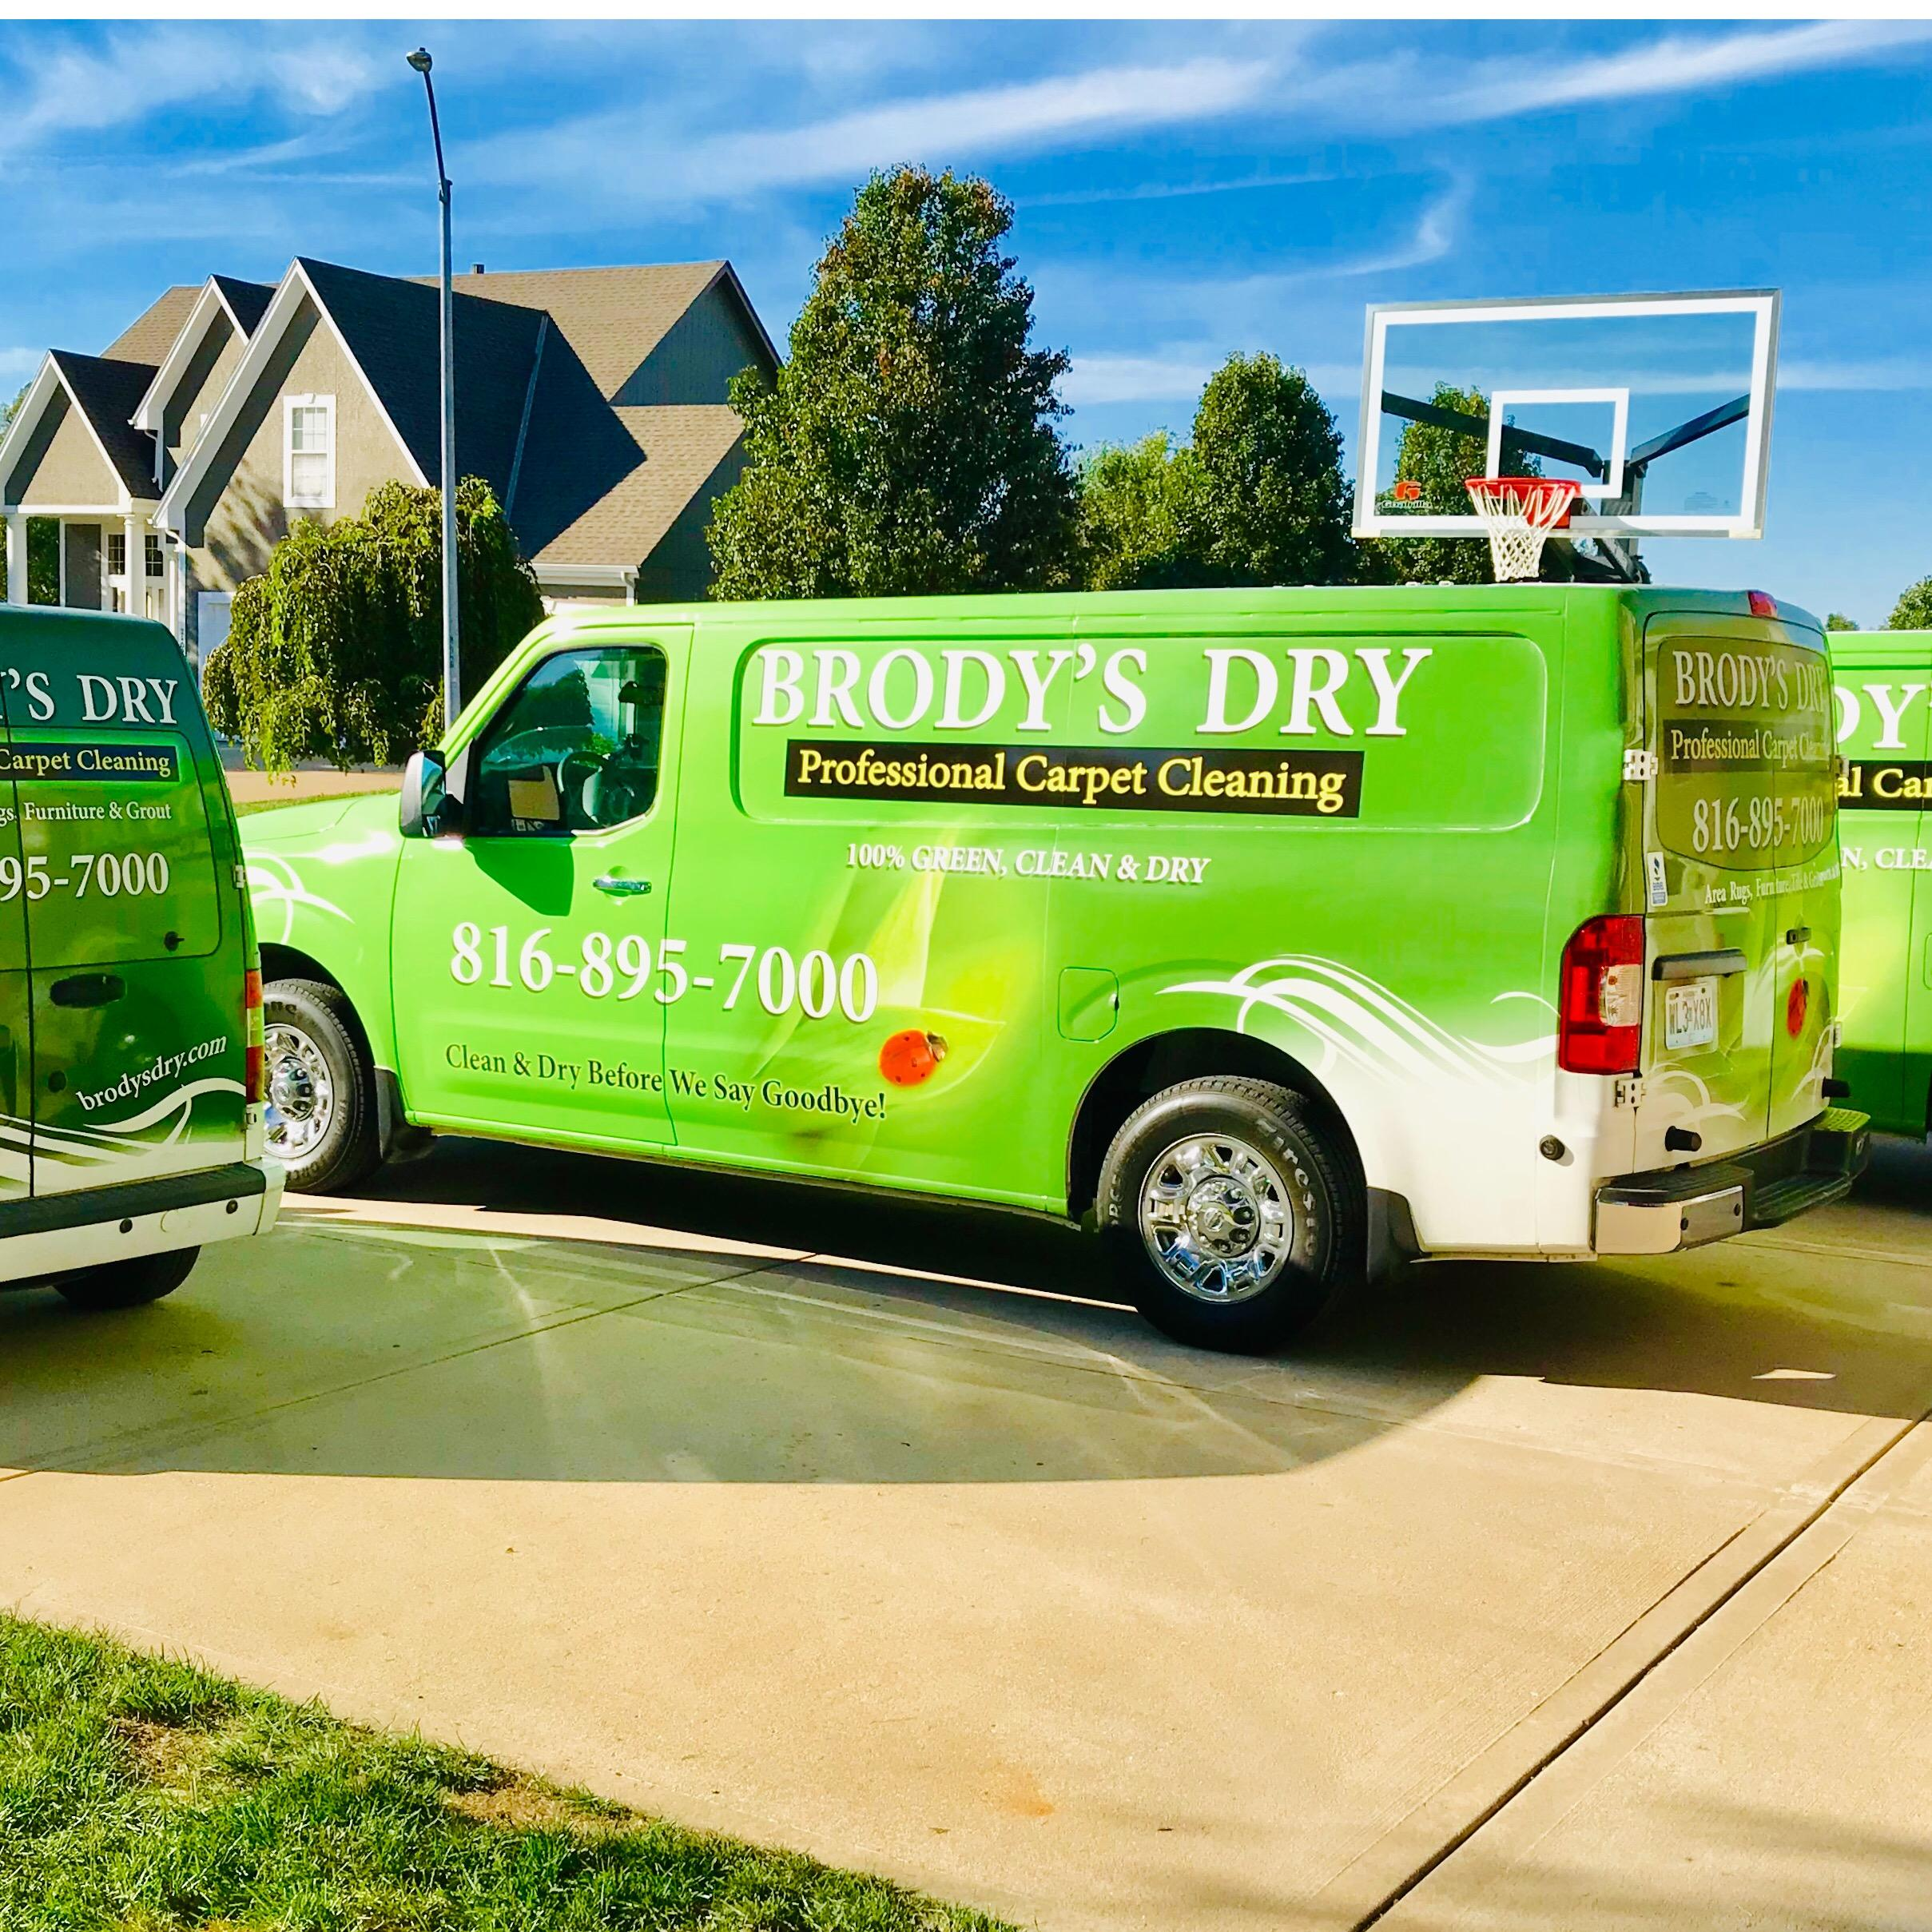 Brody's Dry Professional Carpet Cleaning image 6